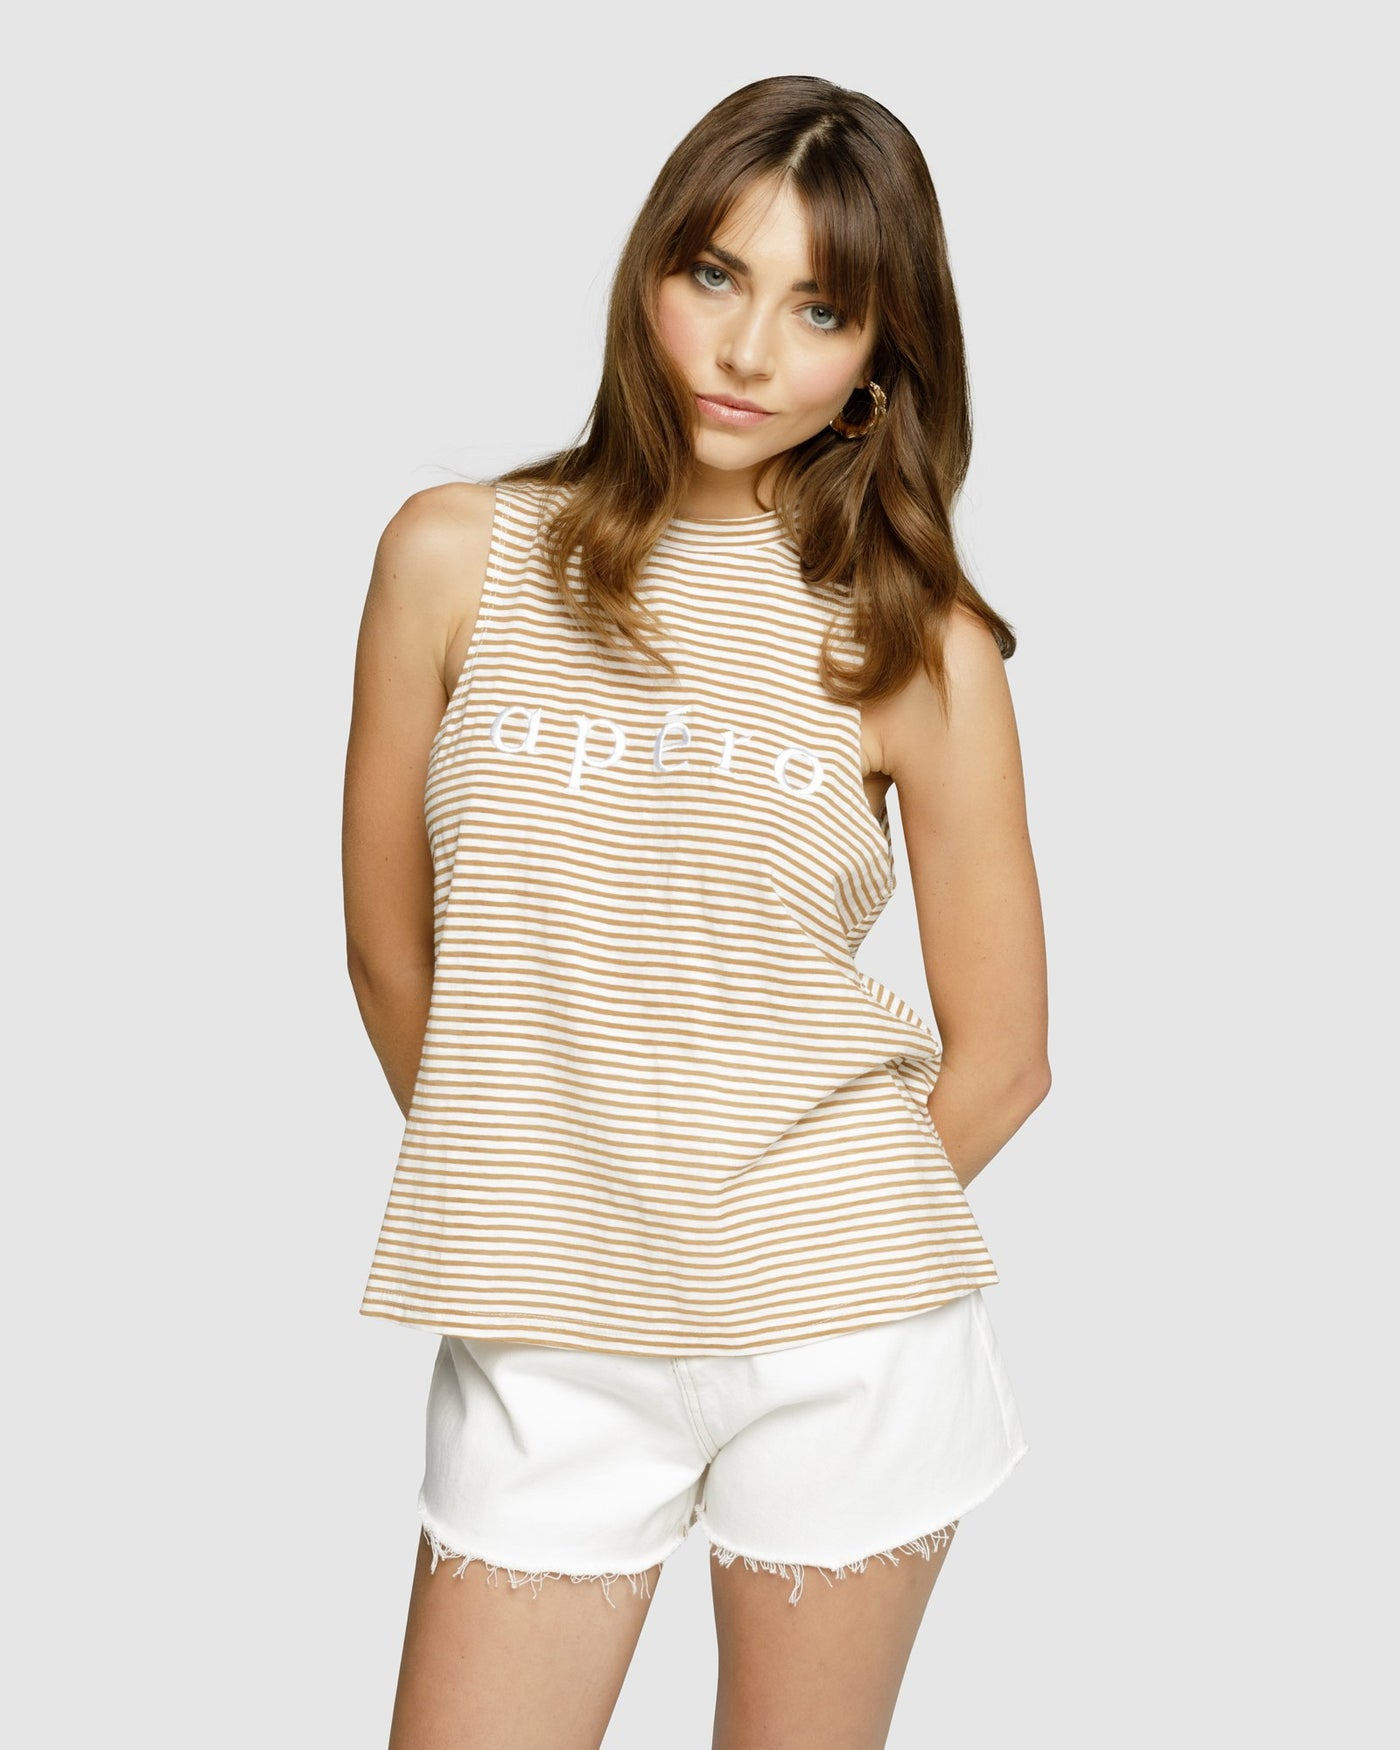 Apéro La Petite Stripe Embroidered Tank - Mustard / White Stripe